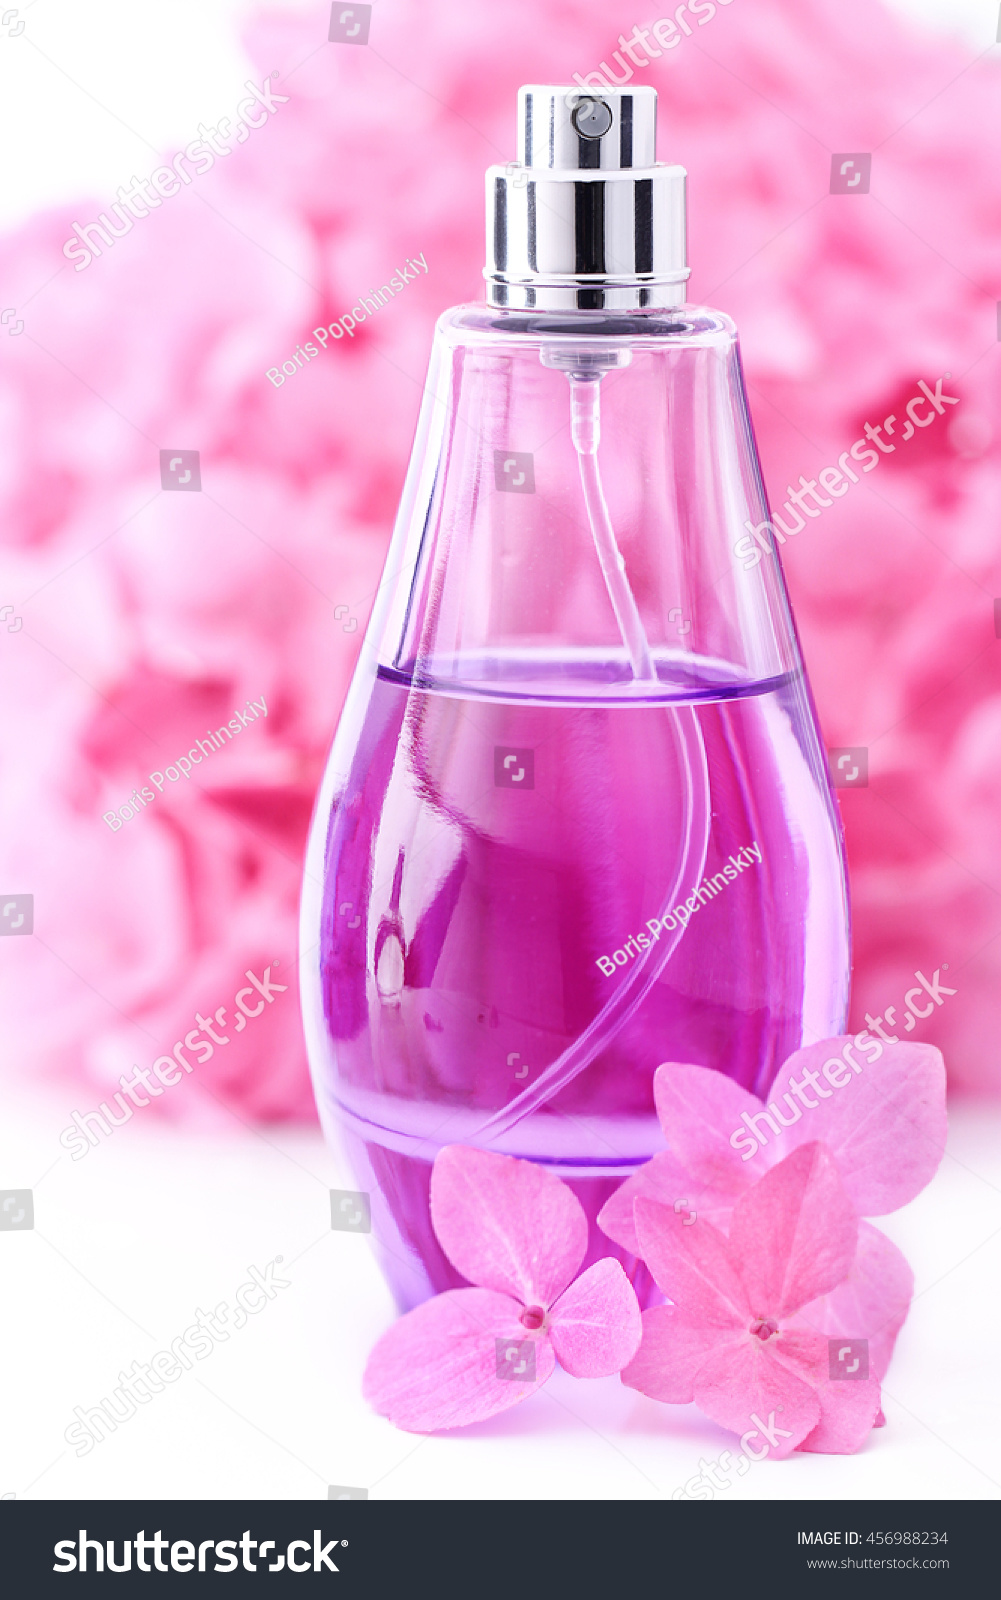 Perfume Bottle With Flowers On A White Background Ez Canvas